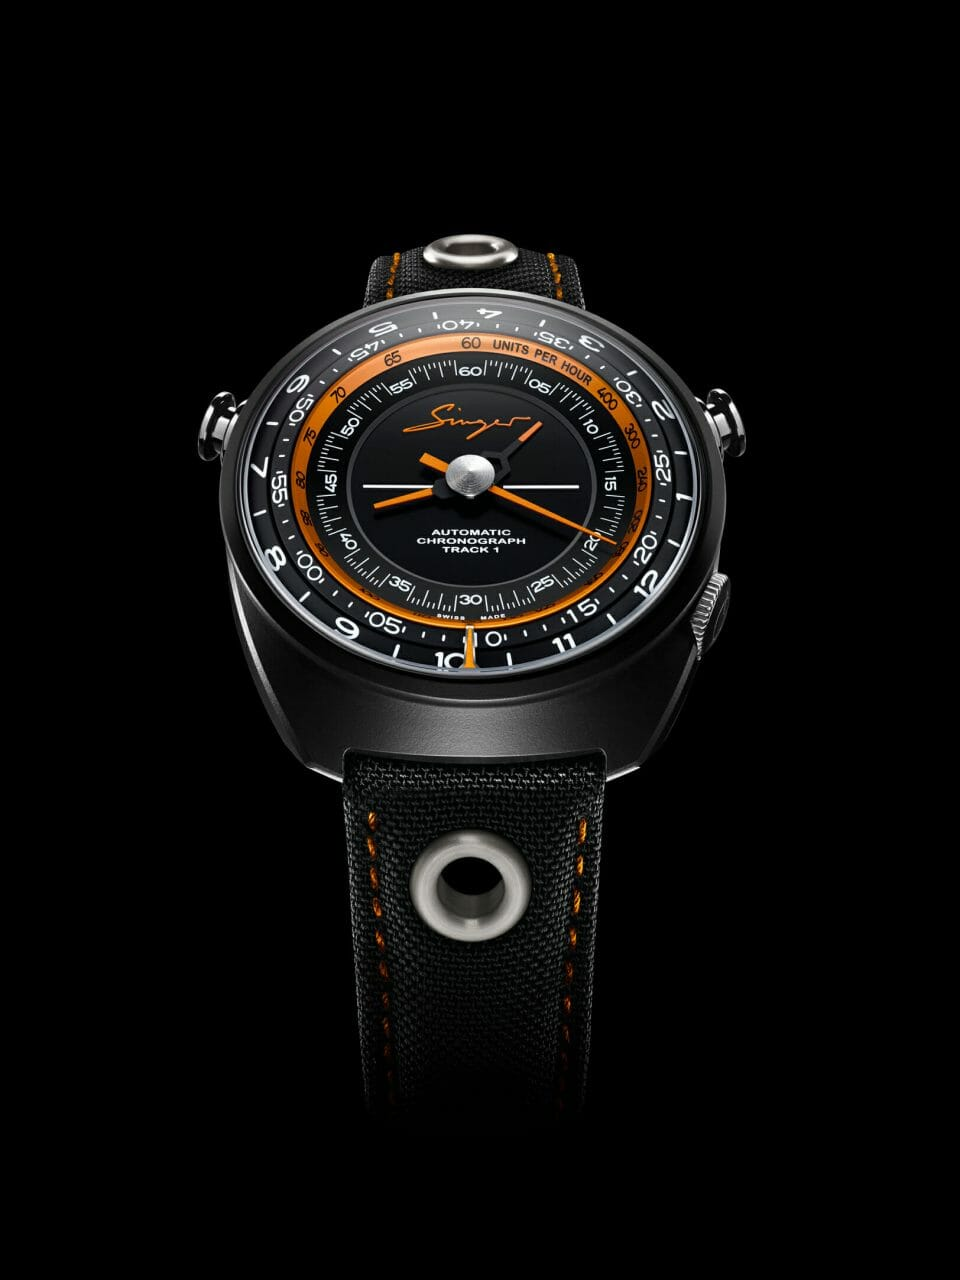 Singer Track1 HK Edition Cobra 30 PHILLIPS PERPETUAL A New Platform that Combines Private Selling Exhibitions, Innovative Partnerships, and a Boutique Experience - EAT LOVE SAVOR International Luxury Lifestyle Magazine